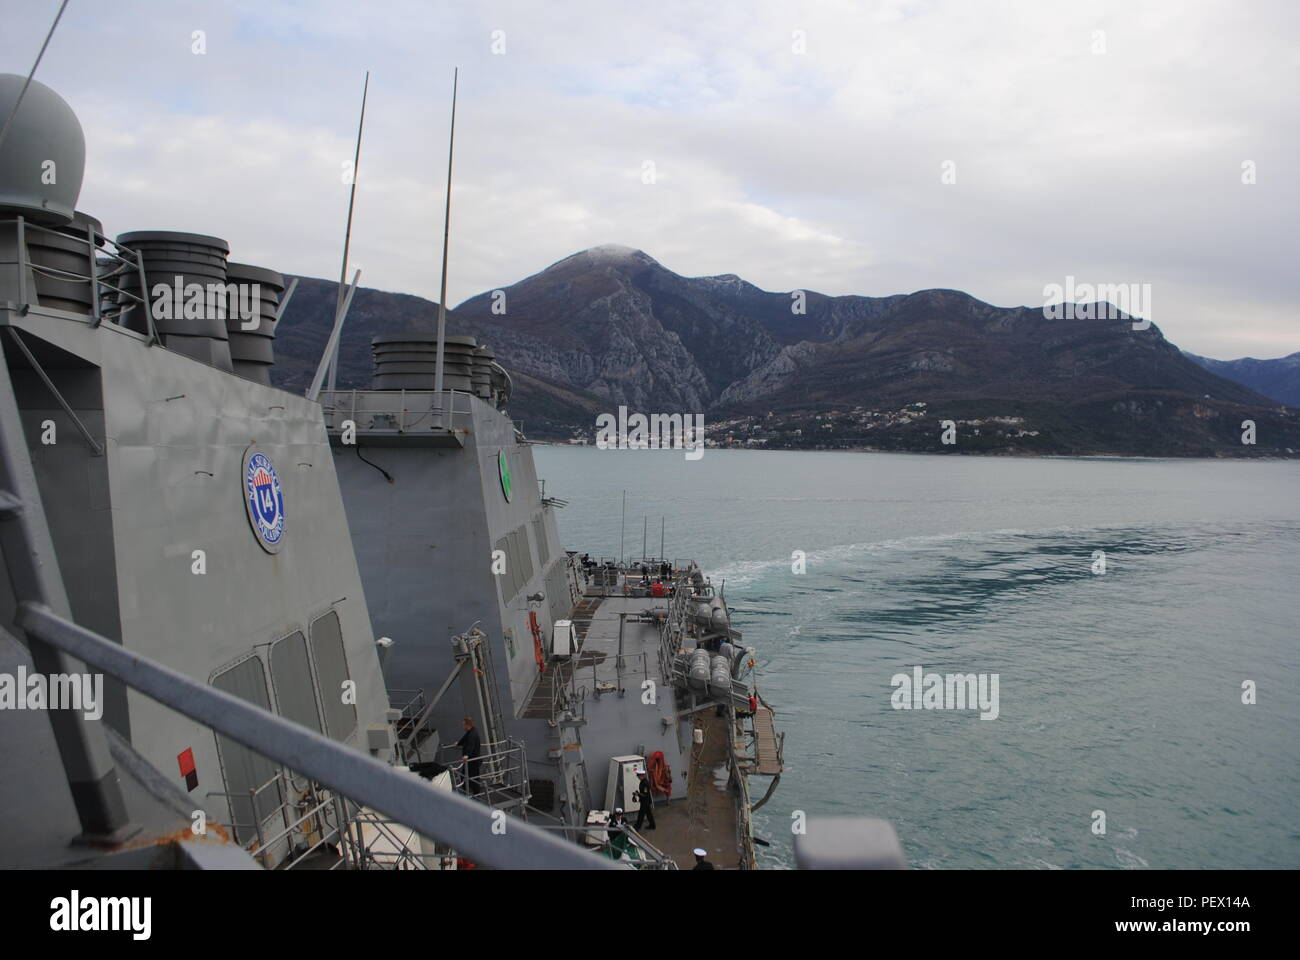 160212-N-ZZ999-019 BAR, Montenegro (Feb. 12, 2016) USS The Sullivans (DDG-68) pulls into Bar, Montenegro, Feb. 12, 2016. The Sullivans is conducting naval operations in the U.S. 6th Fleet area of operations in support of U.S. national security interests in Europe. (U.S. Navy photo/ Released) Stock Photo